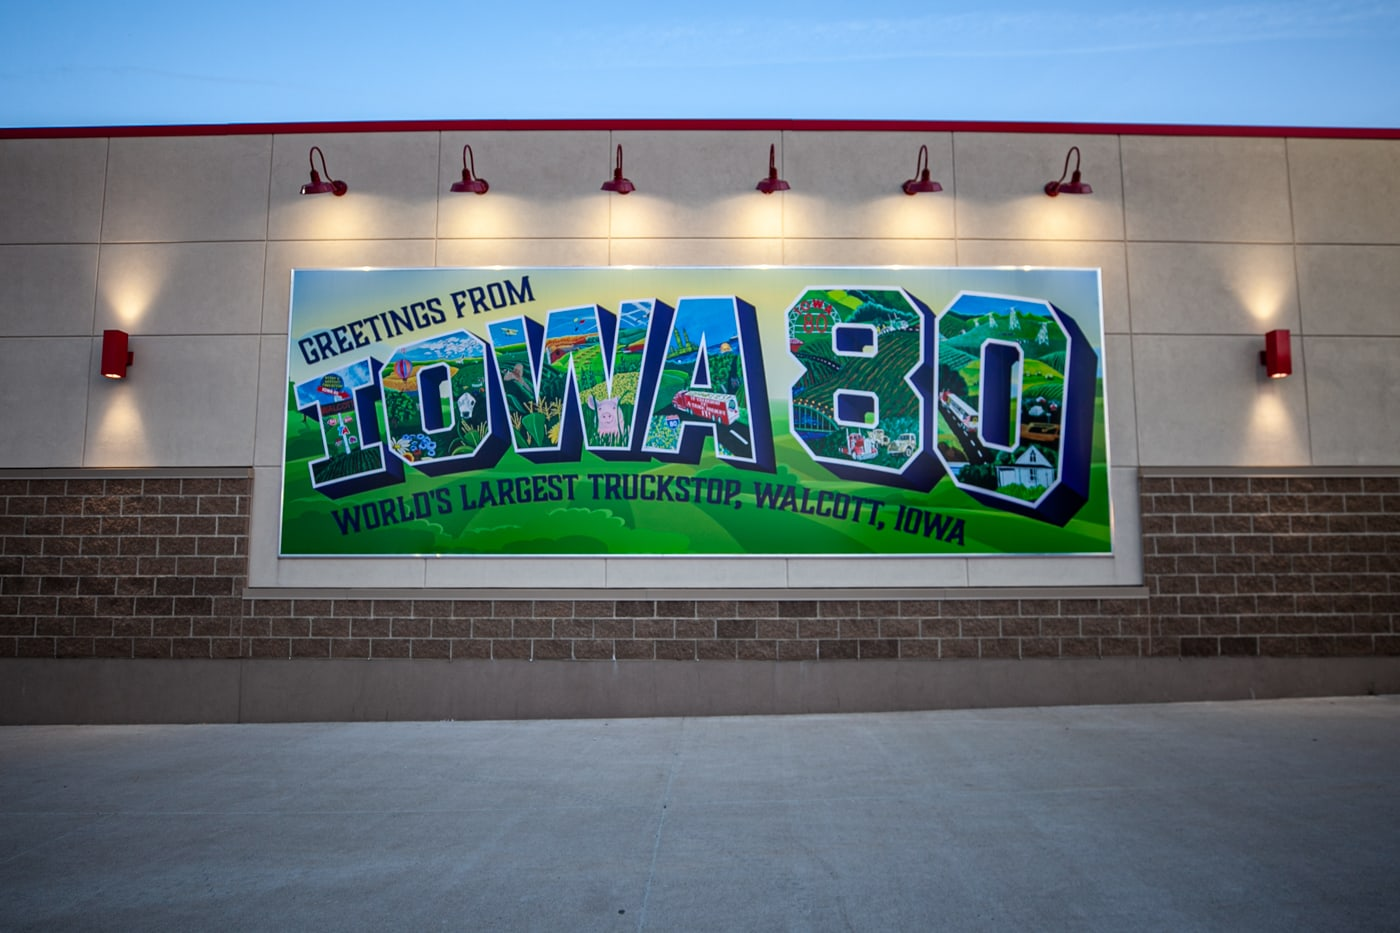 Iowa 80 - the world's larges truck stop in Iowa